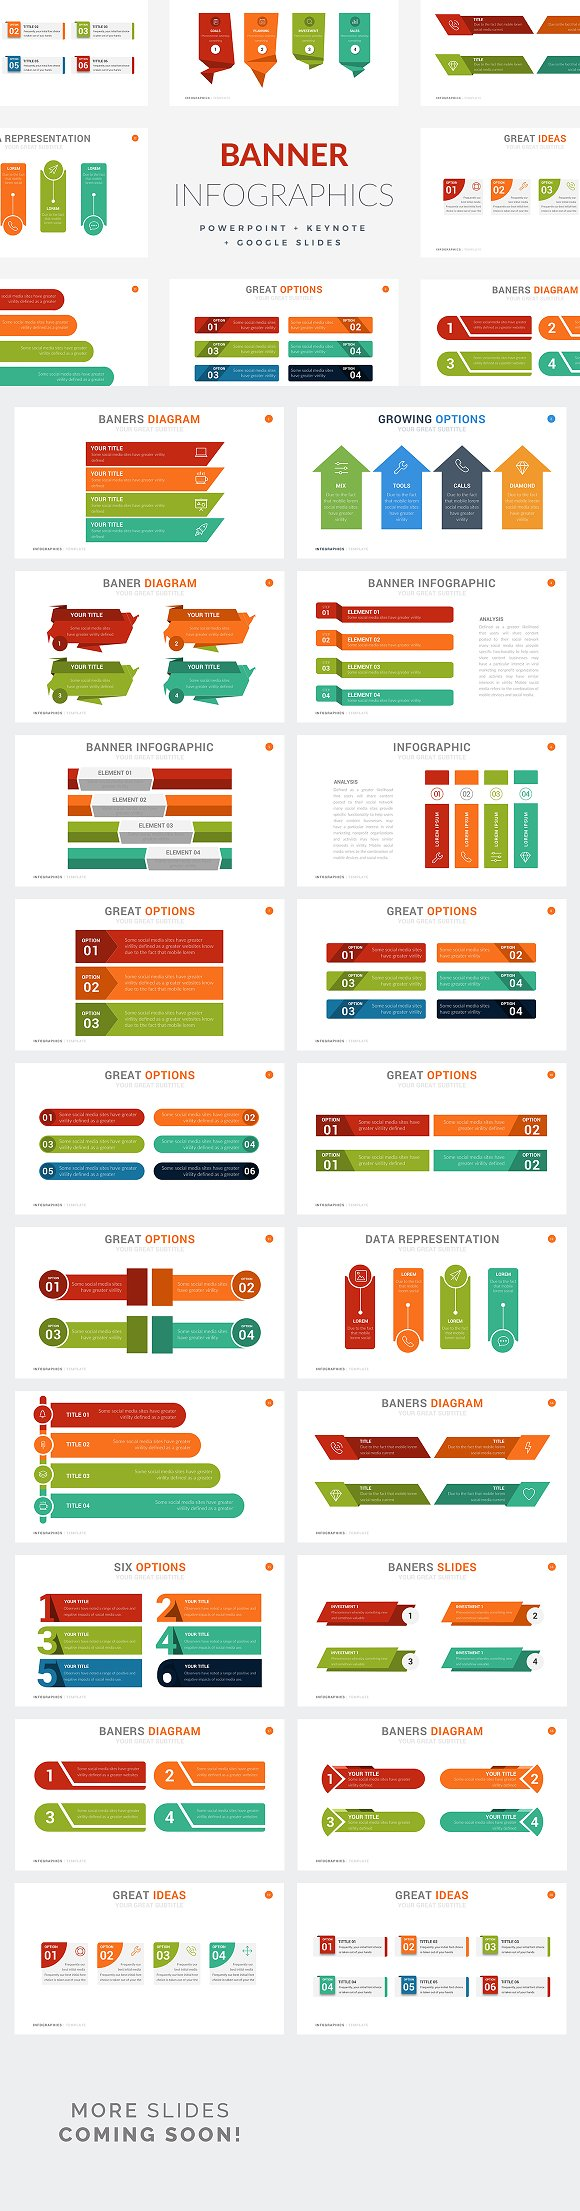 Banner Infographics PPT KEY GS